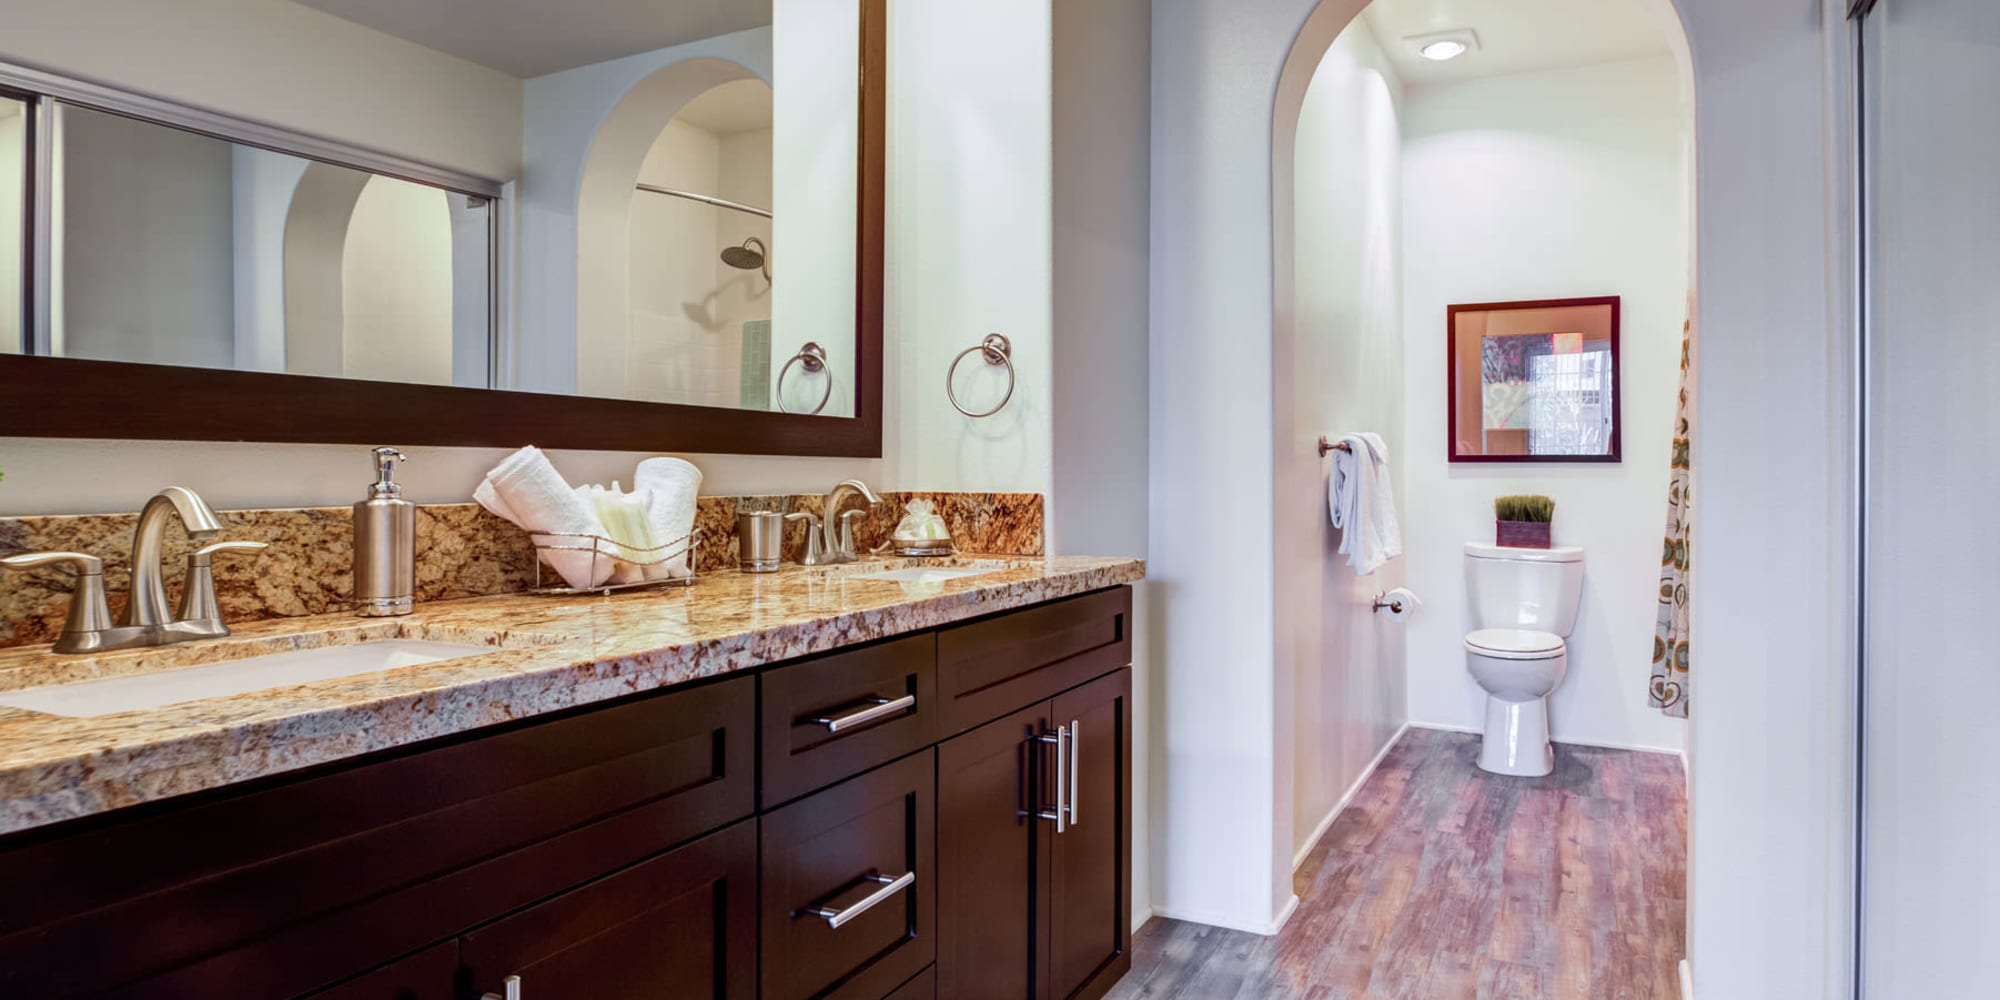 Large primary suite's bathroom with hardwood flooring in a model home at Granite countertop and an overside vanity mirror in a model apartment's bathroom at L'Estancia in Studio City, California